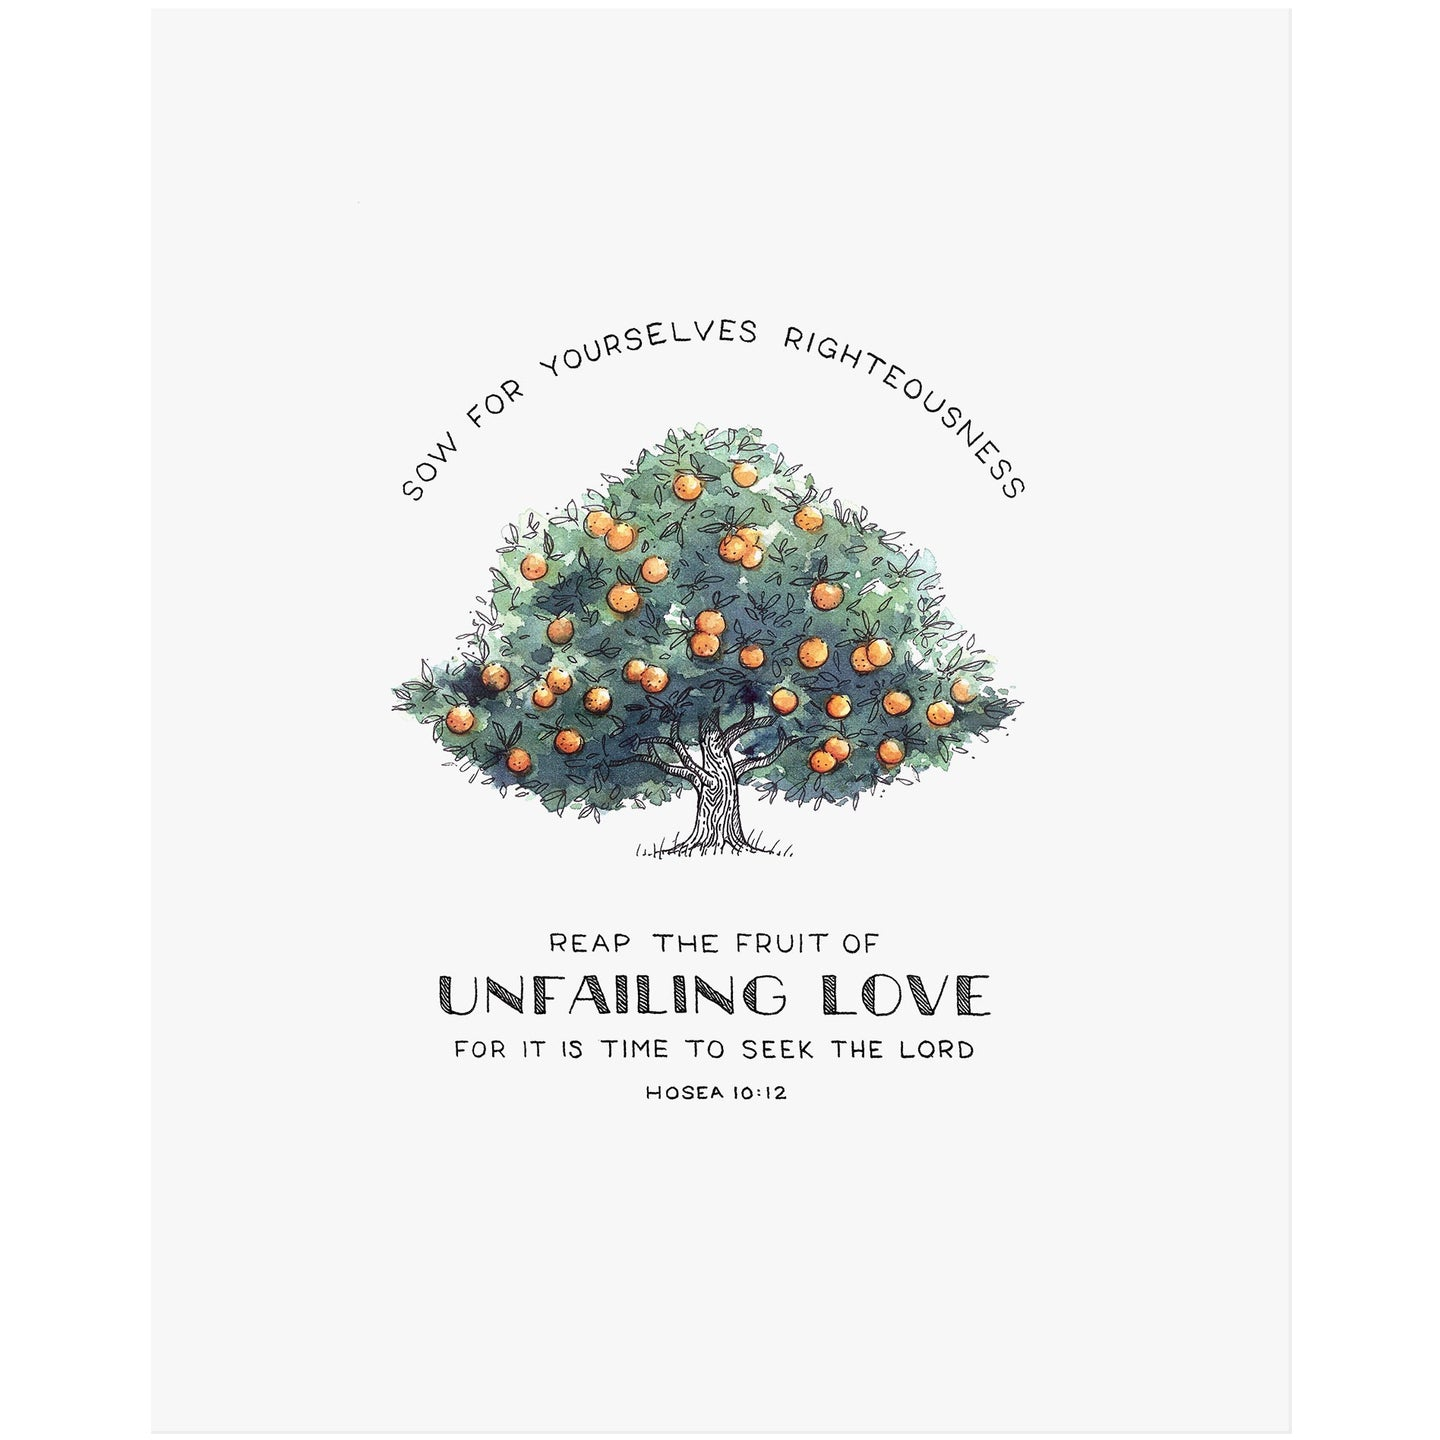 Fruit of Unfailing Love